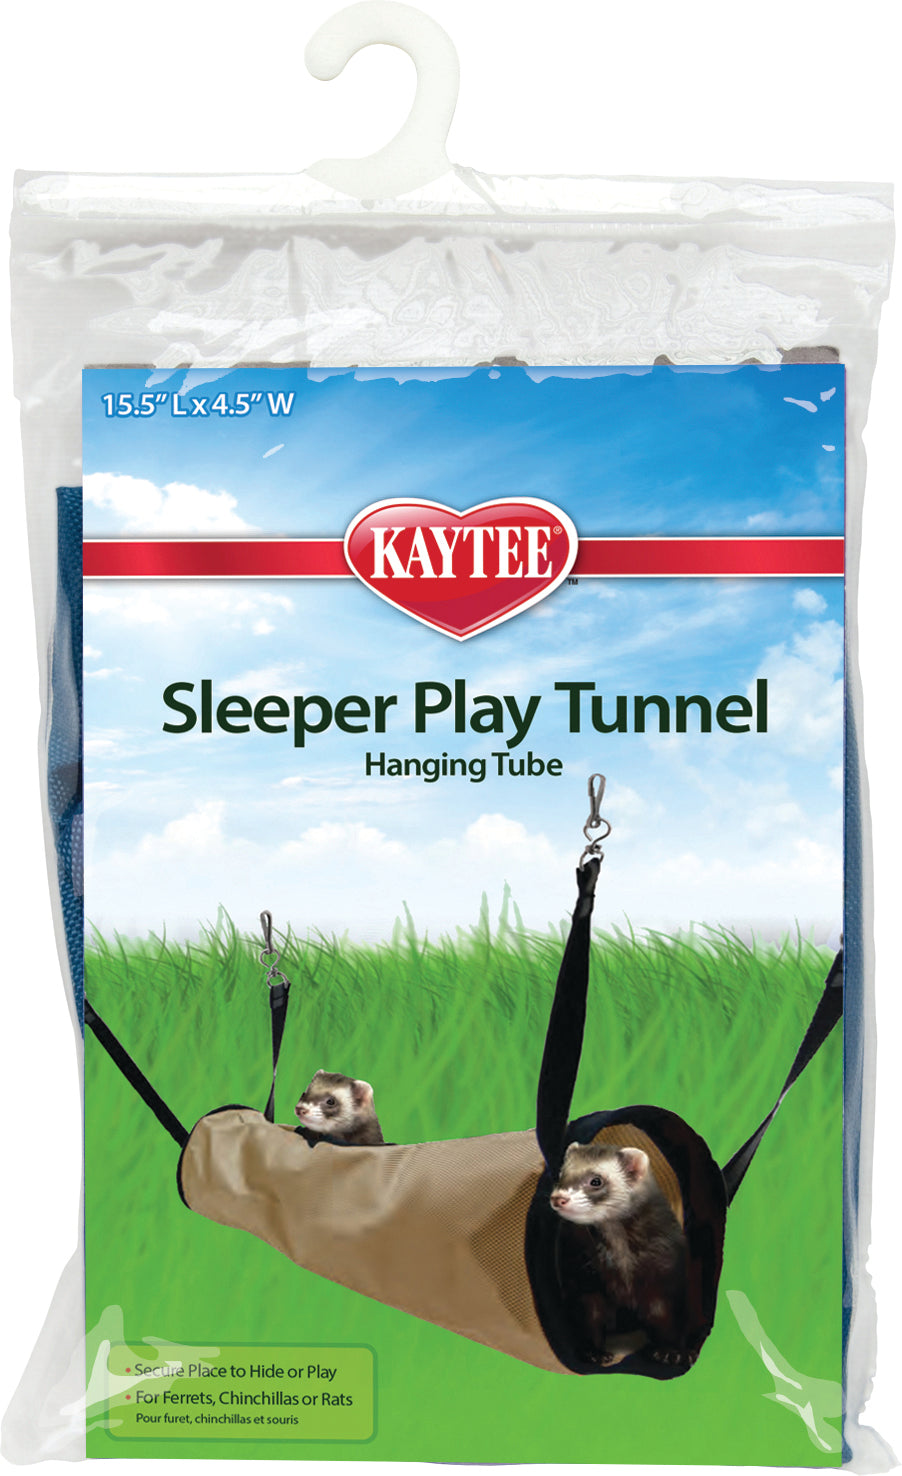 Hanging Tube Sleeper Play Tunnel